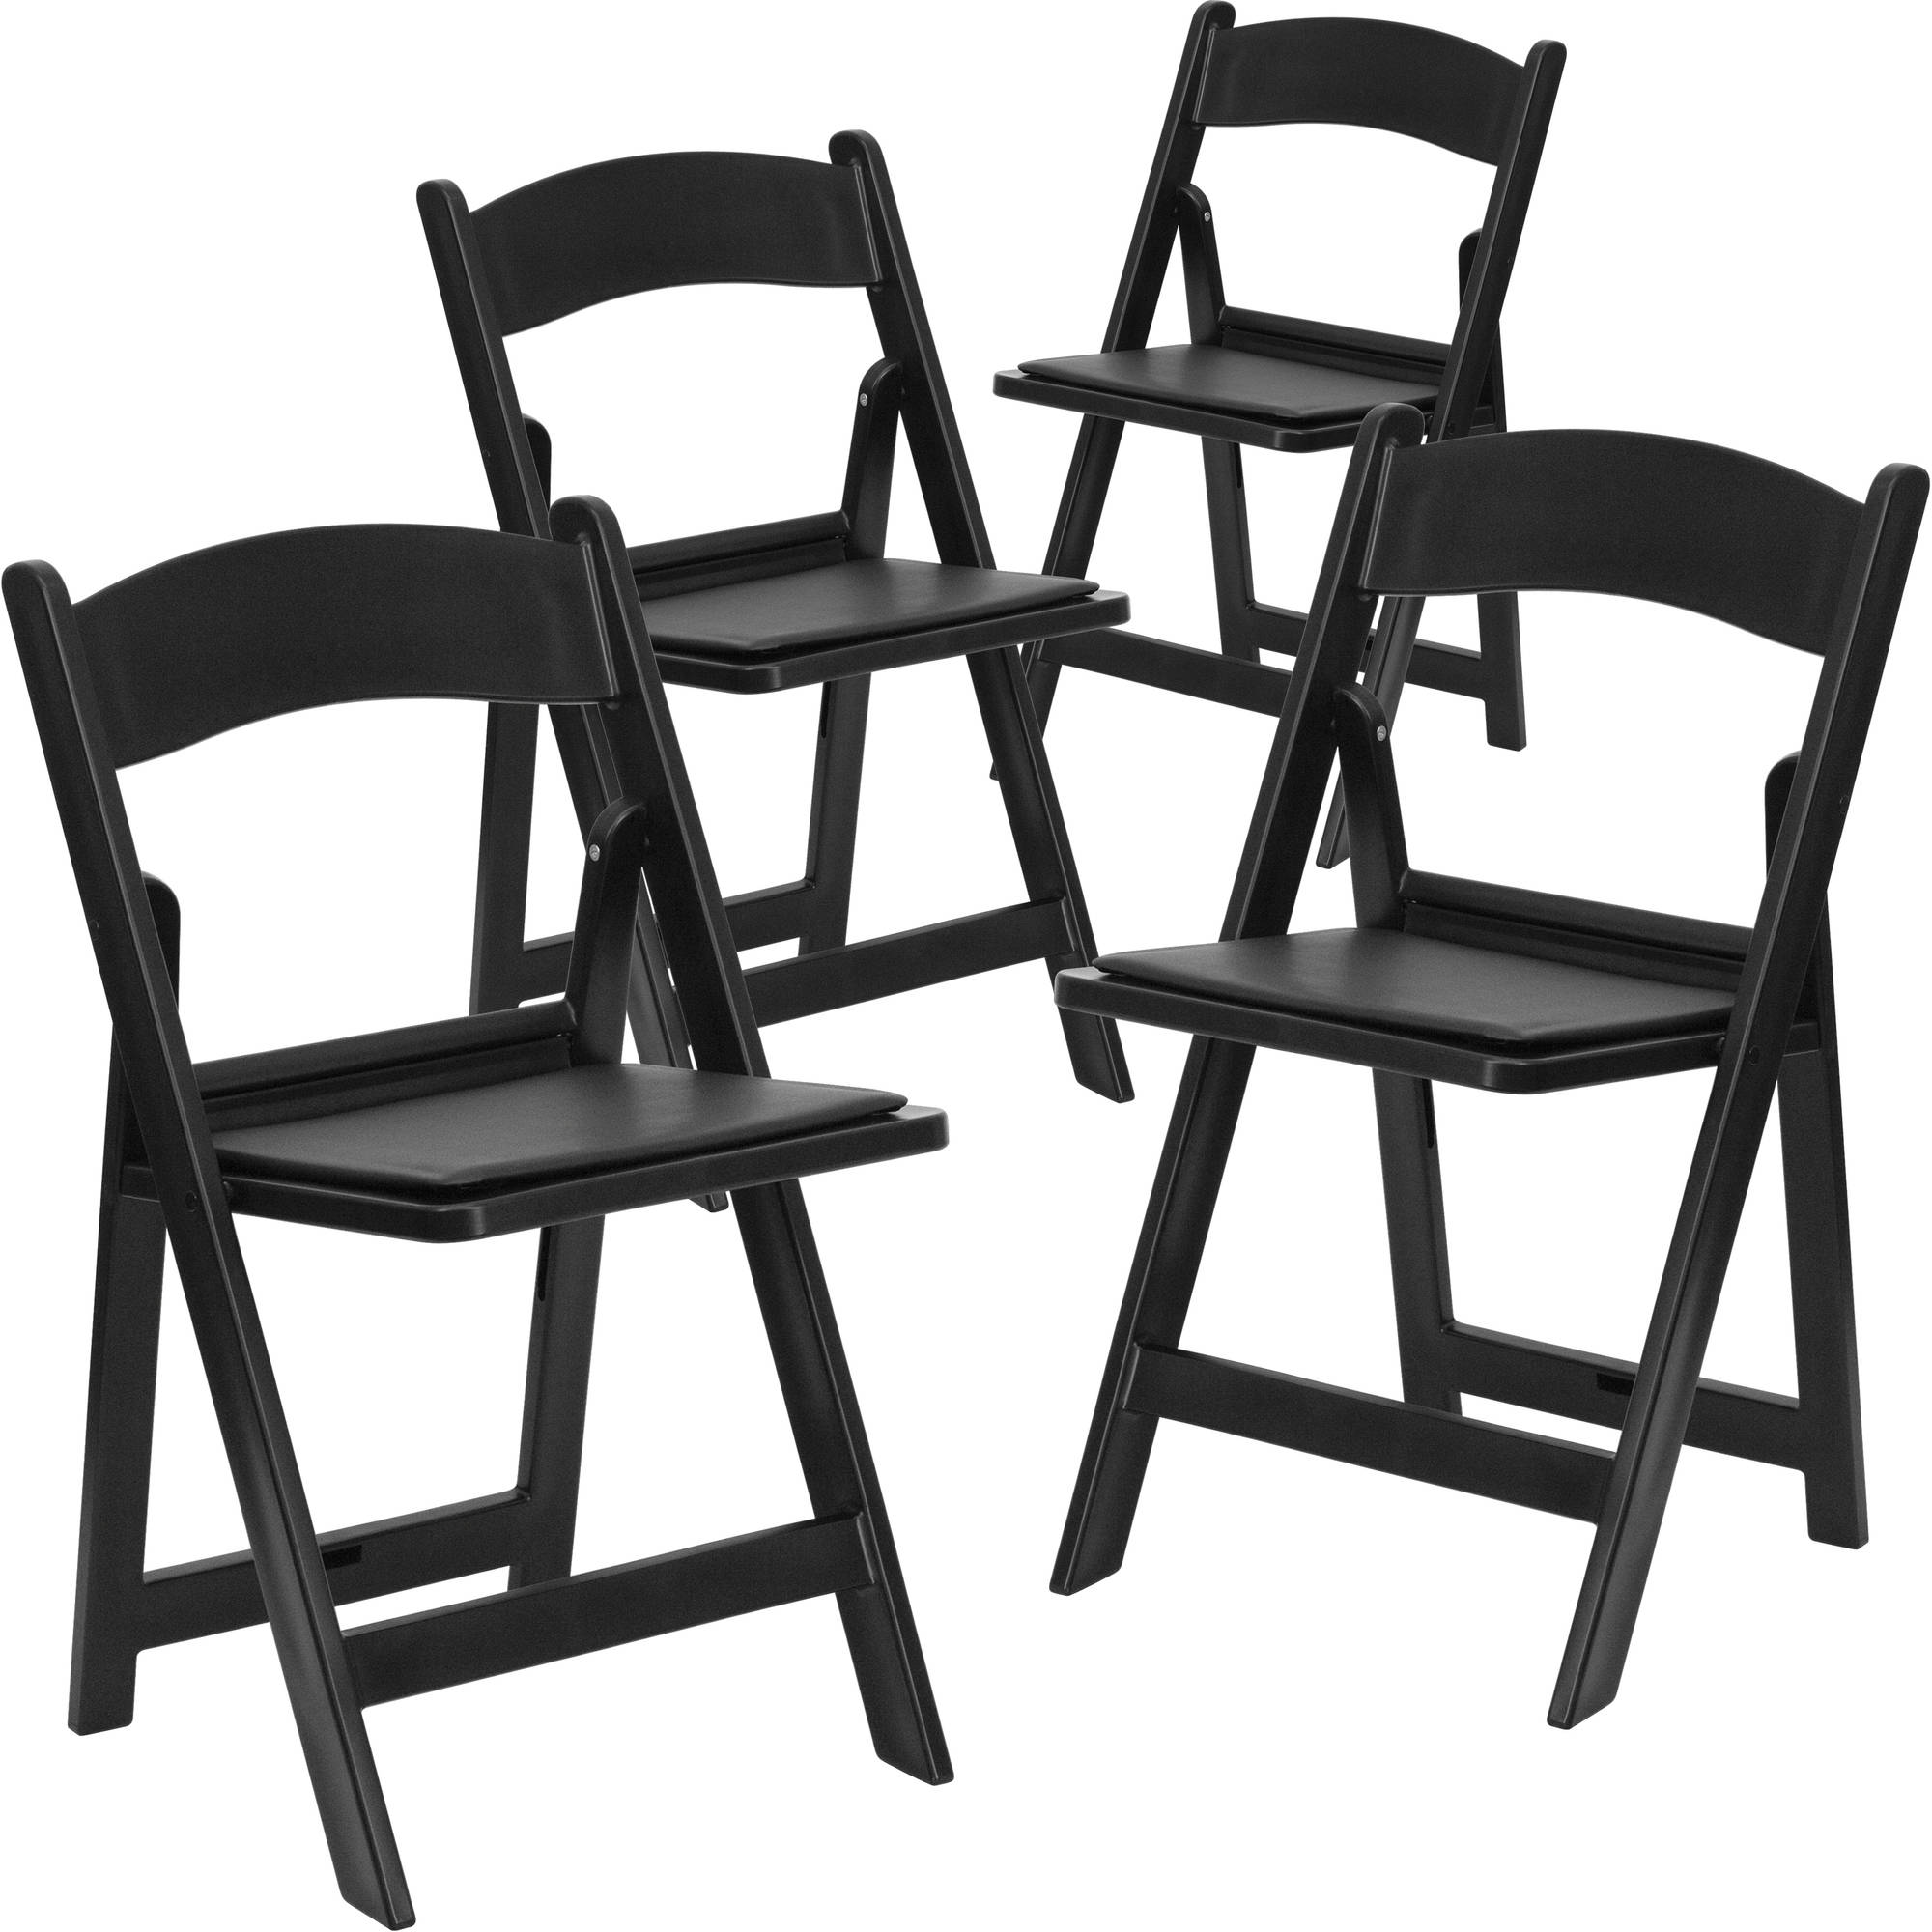 Flash Furniture 4 Pk. HERCULES Series 1000 lb. Capacity Resin Folding Chair with Seat Multiple Colors by Flash Furniture